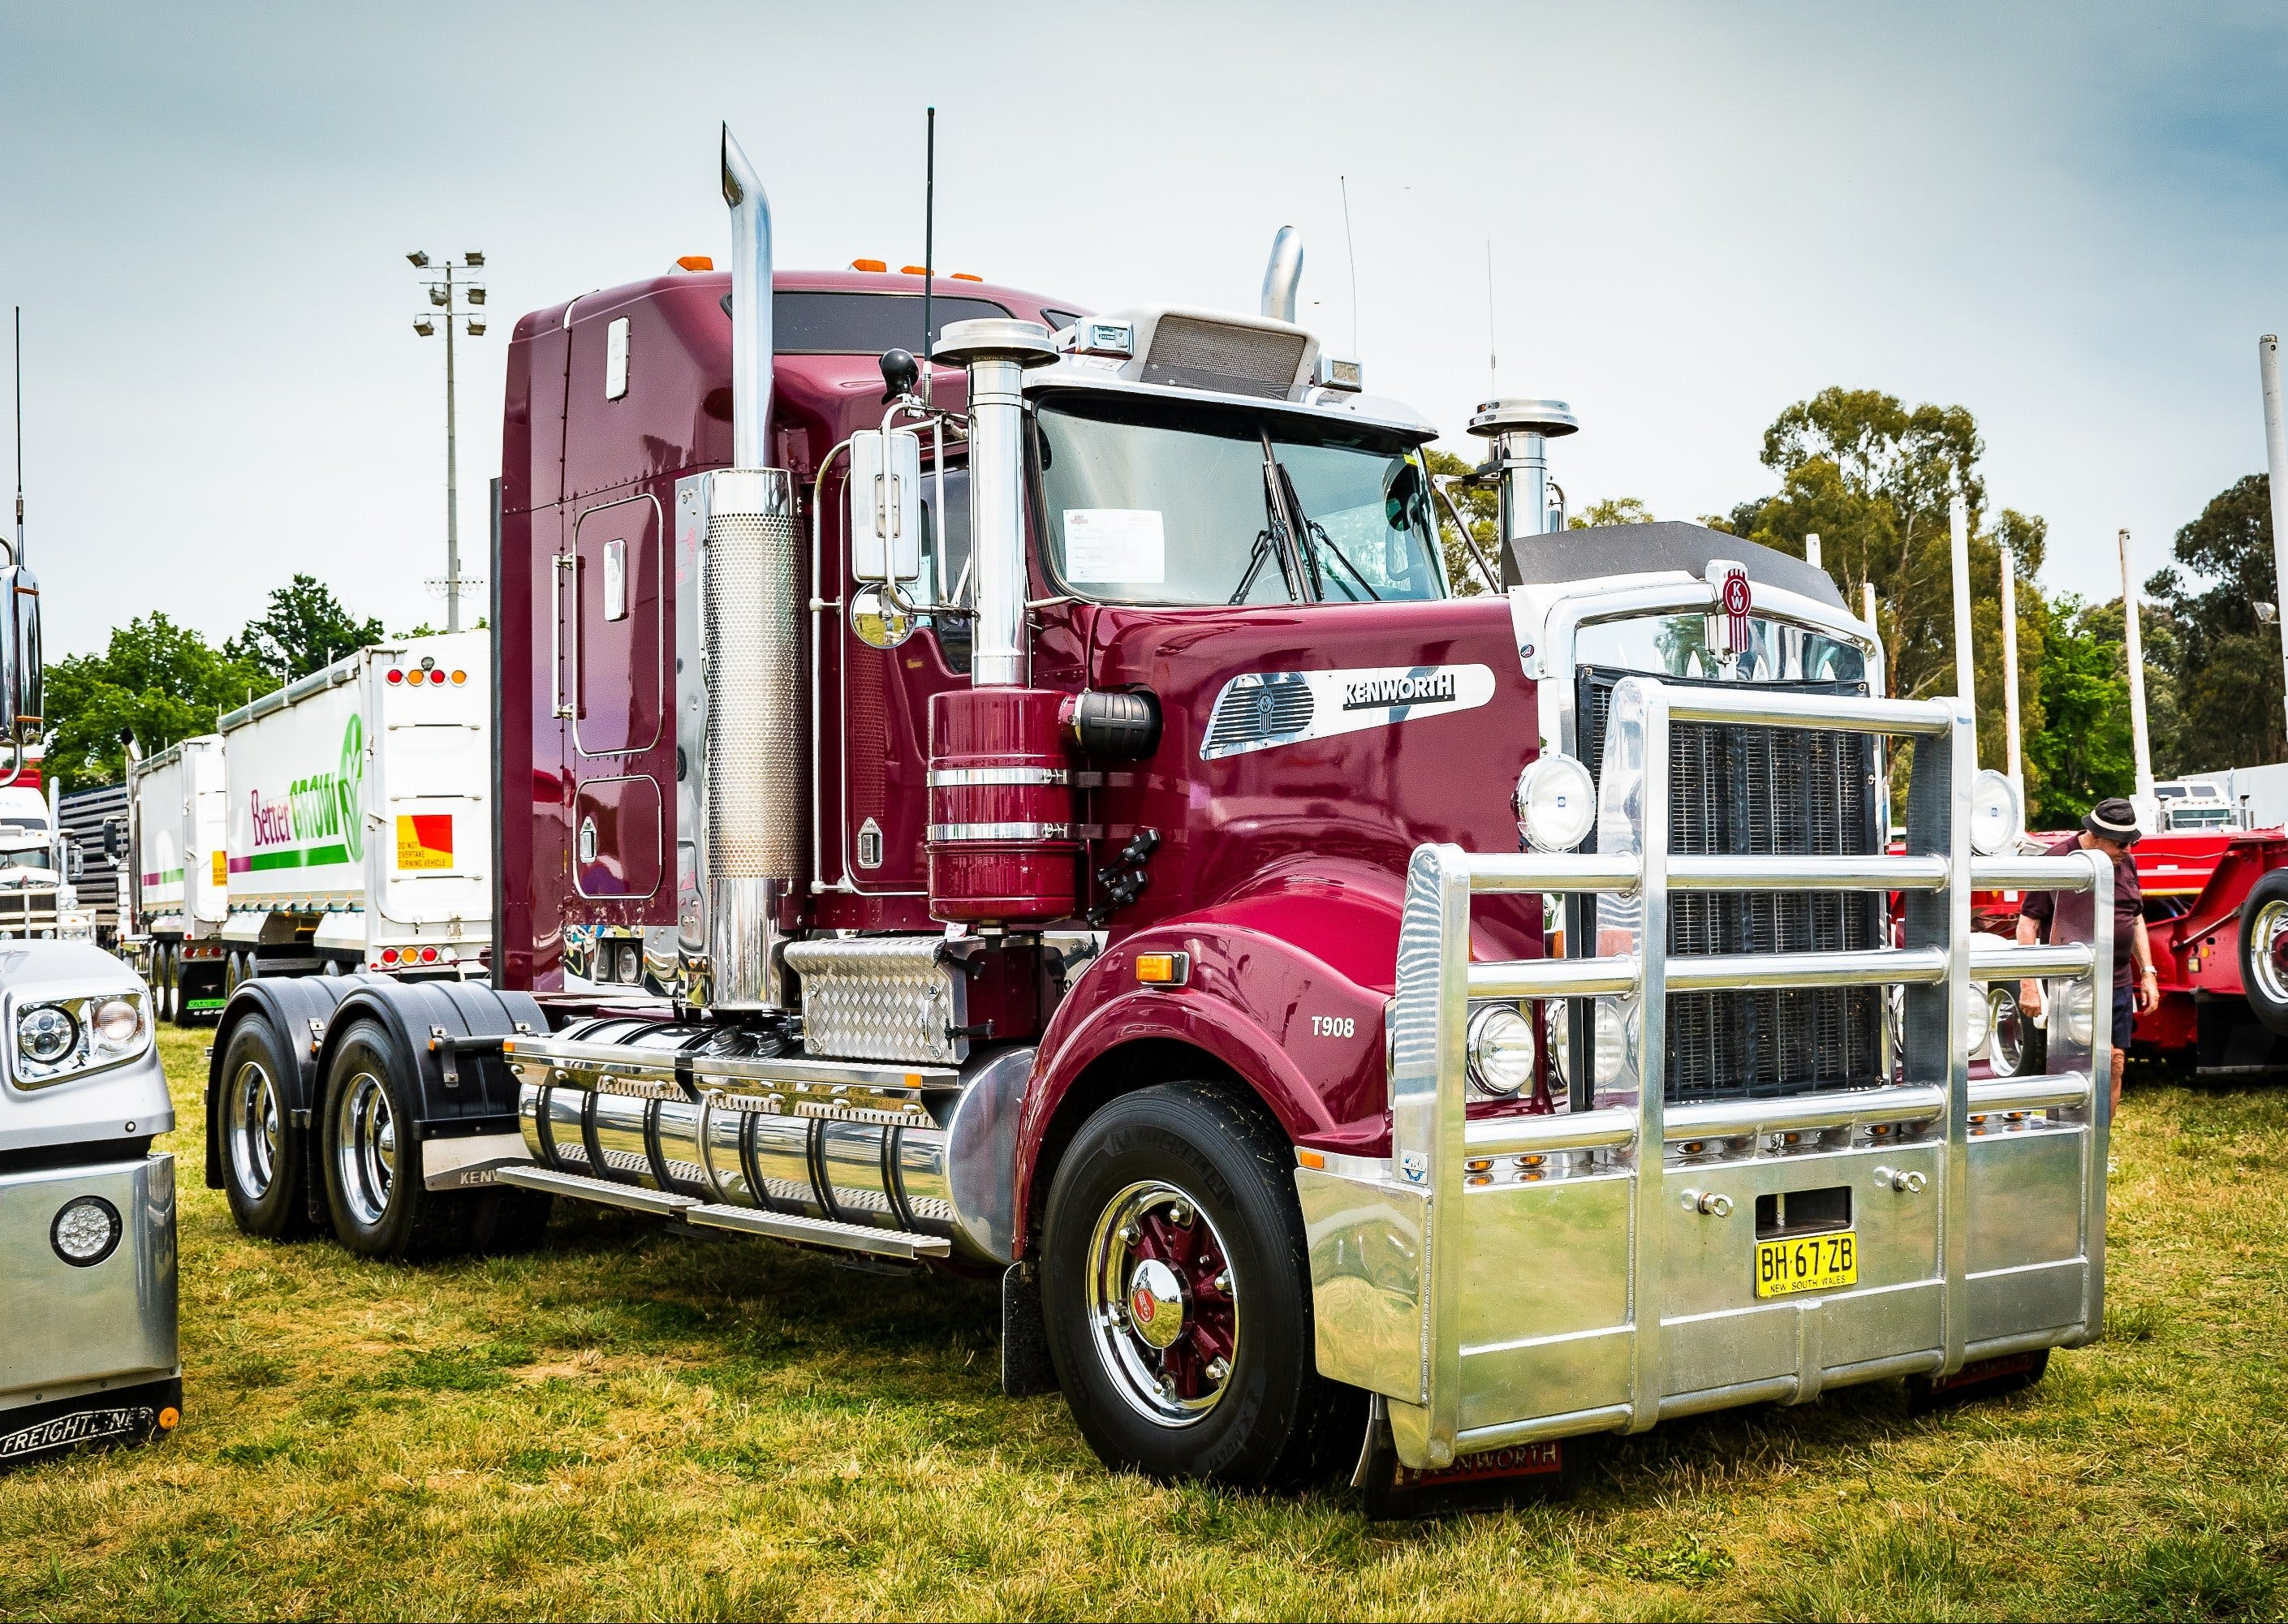 Dane Ballinger Memorial Truck Show - Carnarvon Accommodation